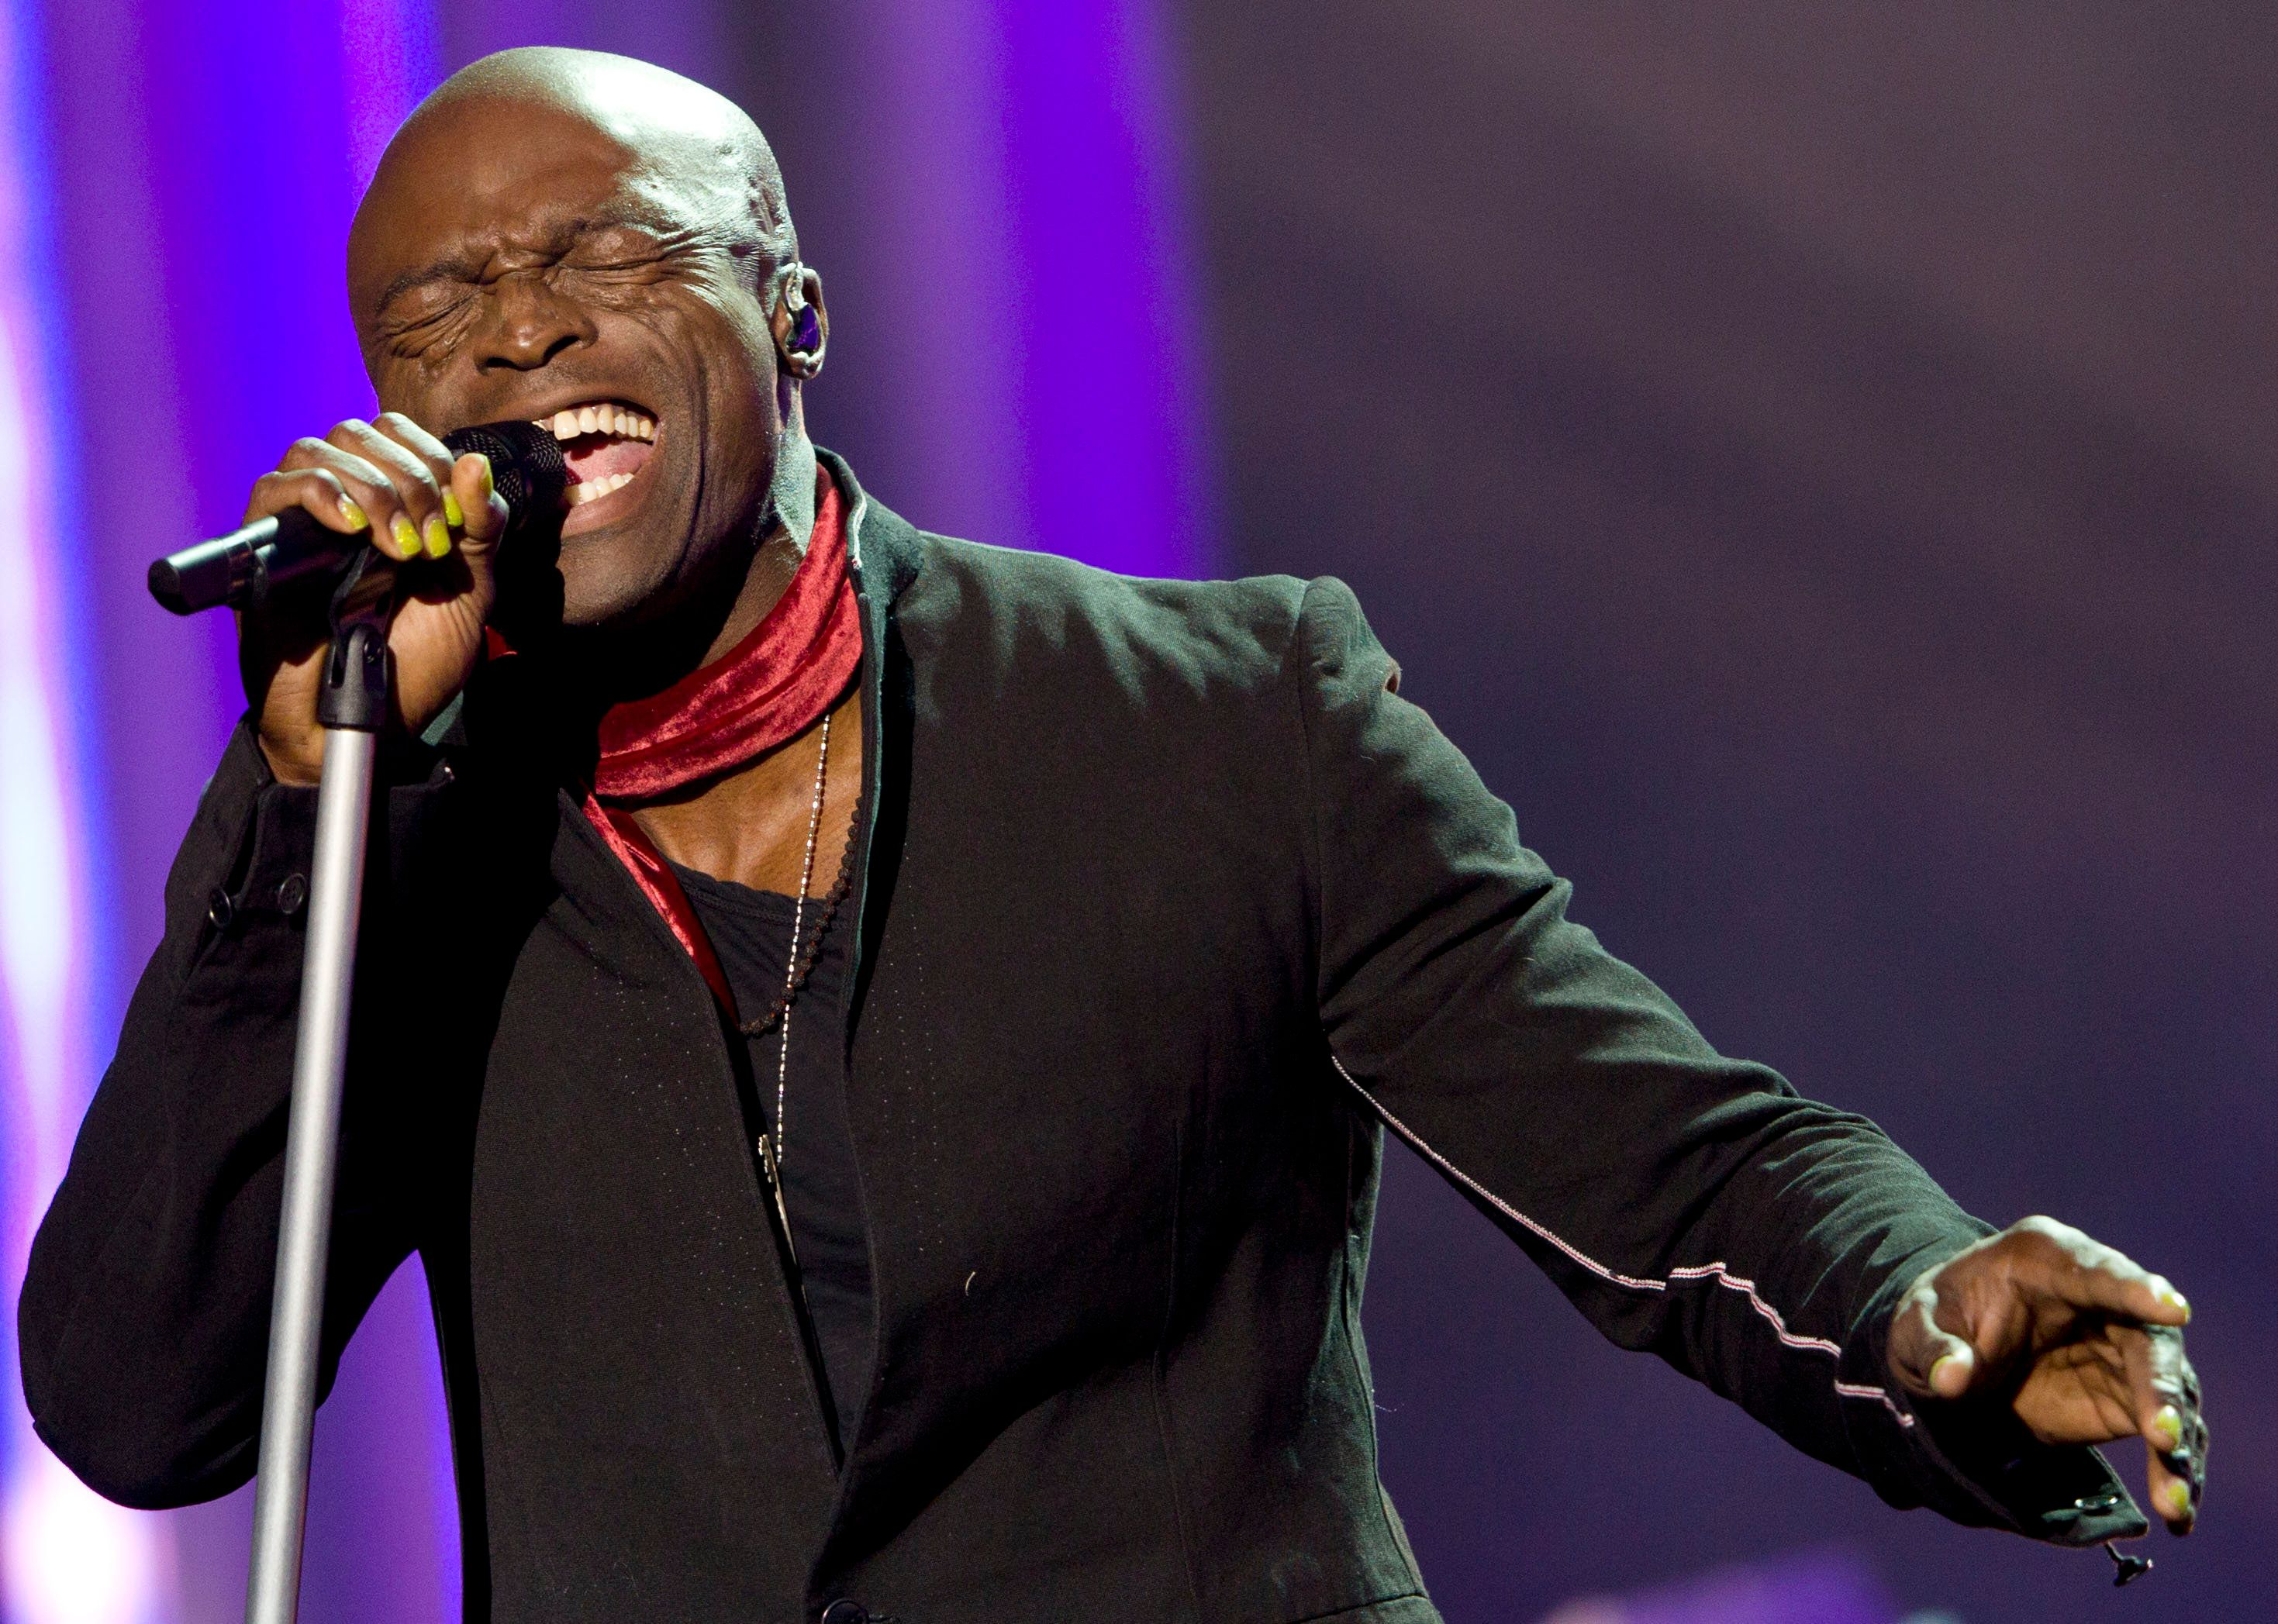 British singer Seal performs on stage during the during the Nobel Peace Prize concert in Oslo, Norway on December 11, 2012. Artists from all over the world gathered at the Oslo Spektrum to help spread the message of peace and celebrate this year's Nobel Peace Prize laureates, European Union (EU) President Herman Van Rompuy the President of the European Commission Jose Manuel Barroso and the President of the European Parliament Martin Schulz.  AFP PHOTO / DANIEL SANNUM-LAUTEN        (Photo credit should read DANIEL SANNUM LAUTEN/AFP/Getty Images)